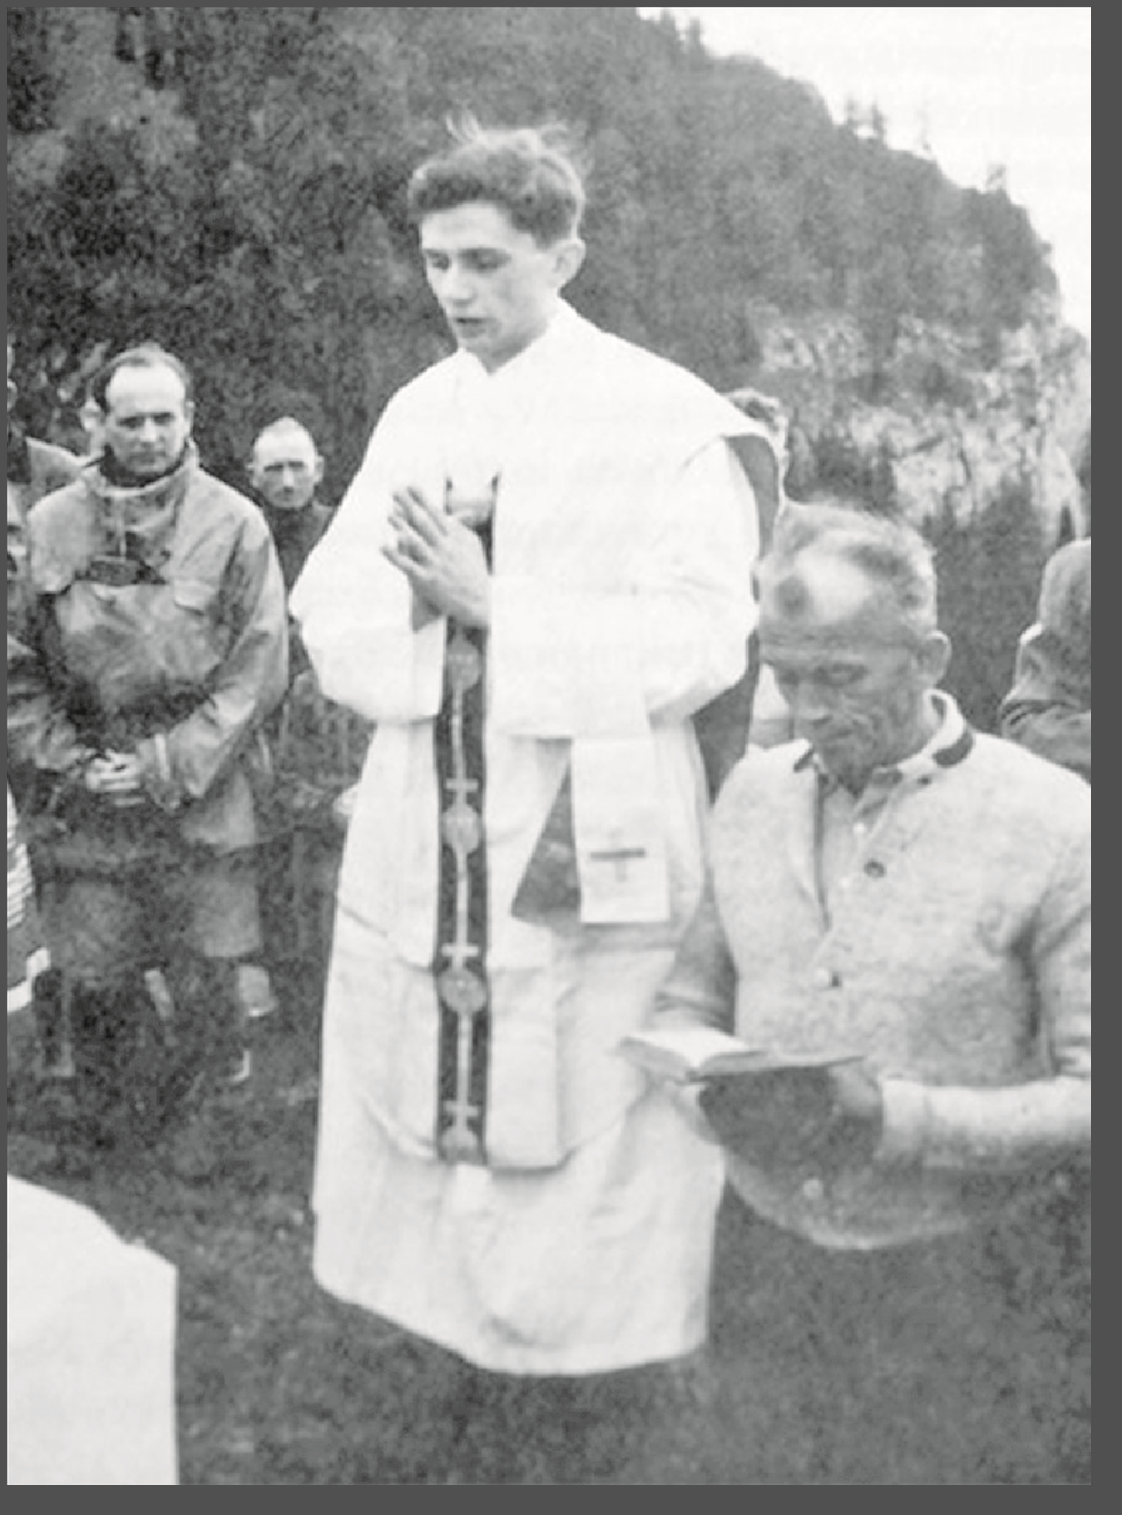 Rev. Joseph Ratzinger at a Mountain Site Near the Bavarian Town of Ruhpolding, Germany, 1952